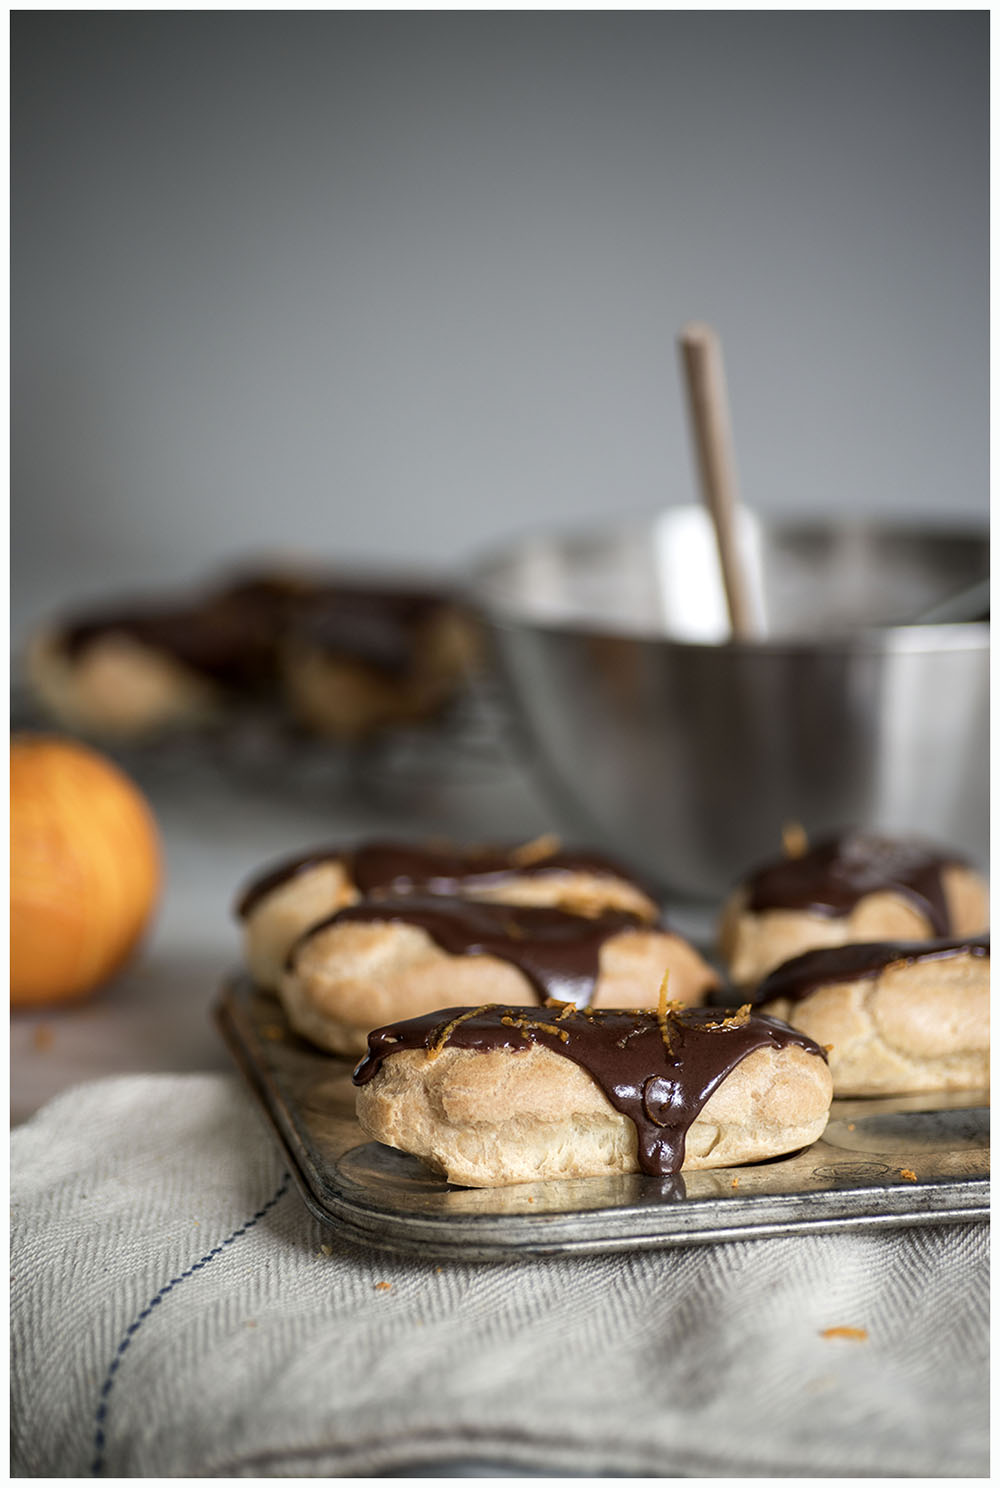 Orange and dark chocolate éclairs